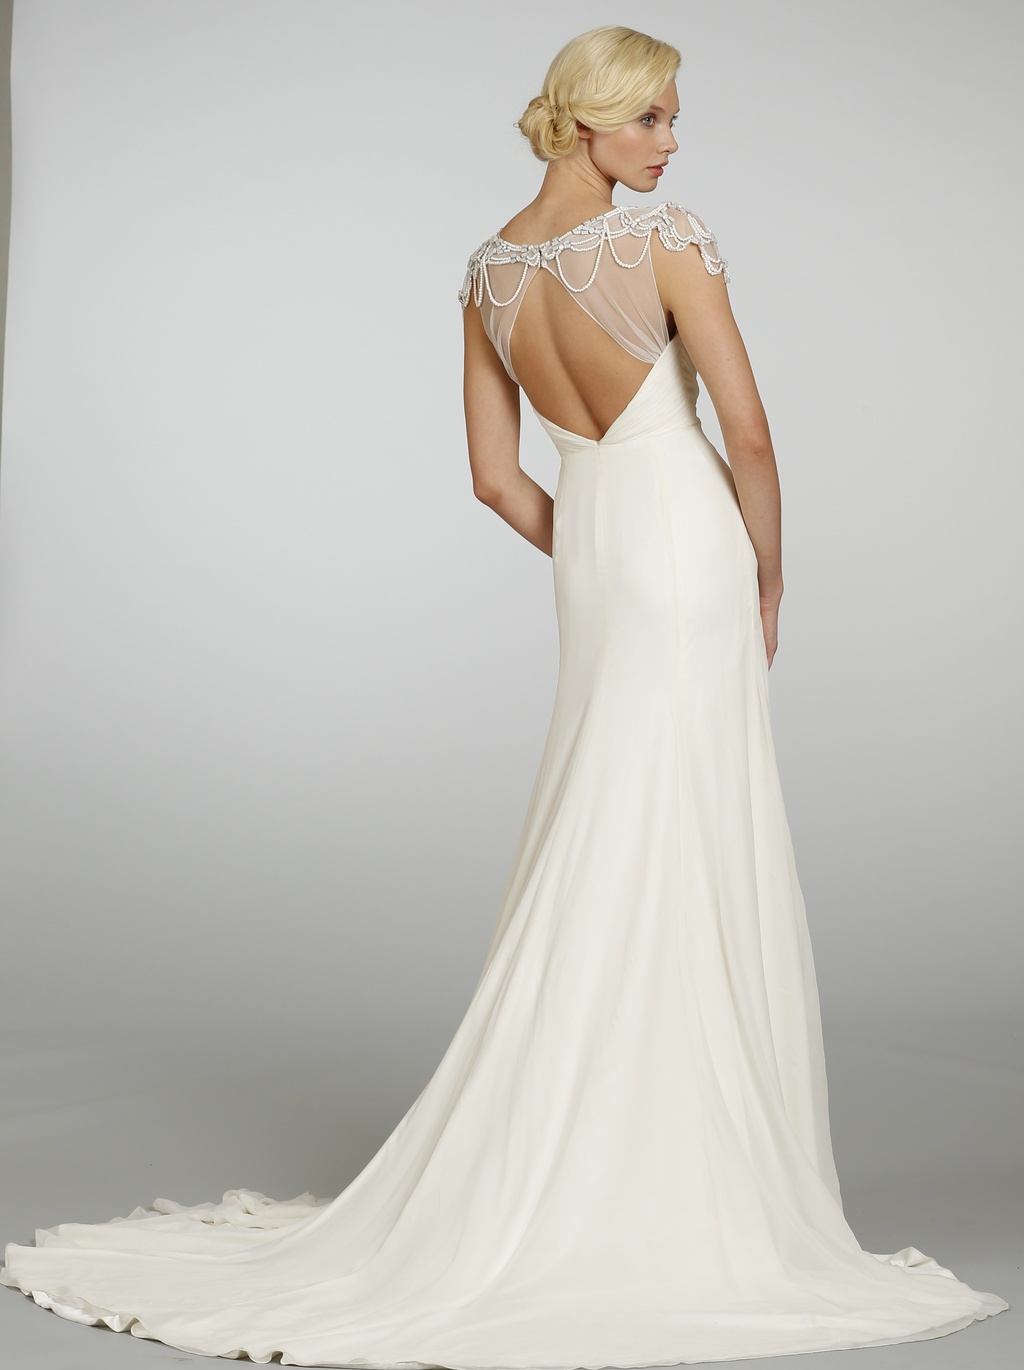 Spring-2013-wedding-dress-hayley-paige-bridal-gowns-6308-statement-back.full